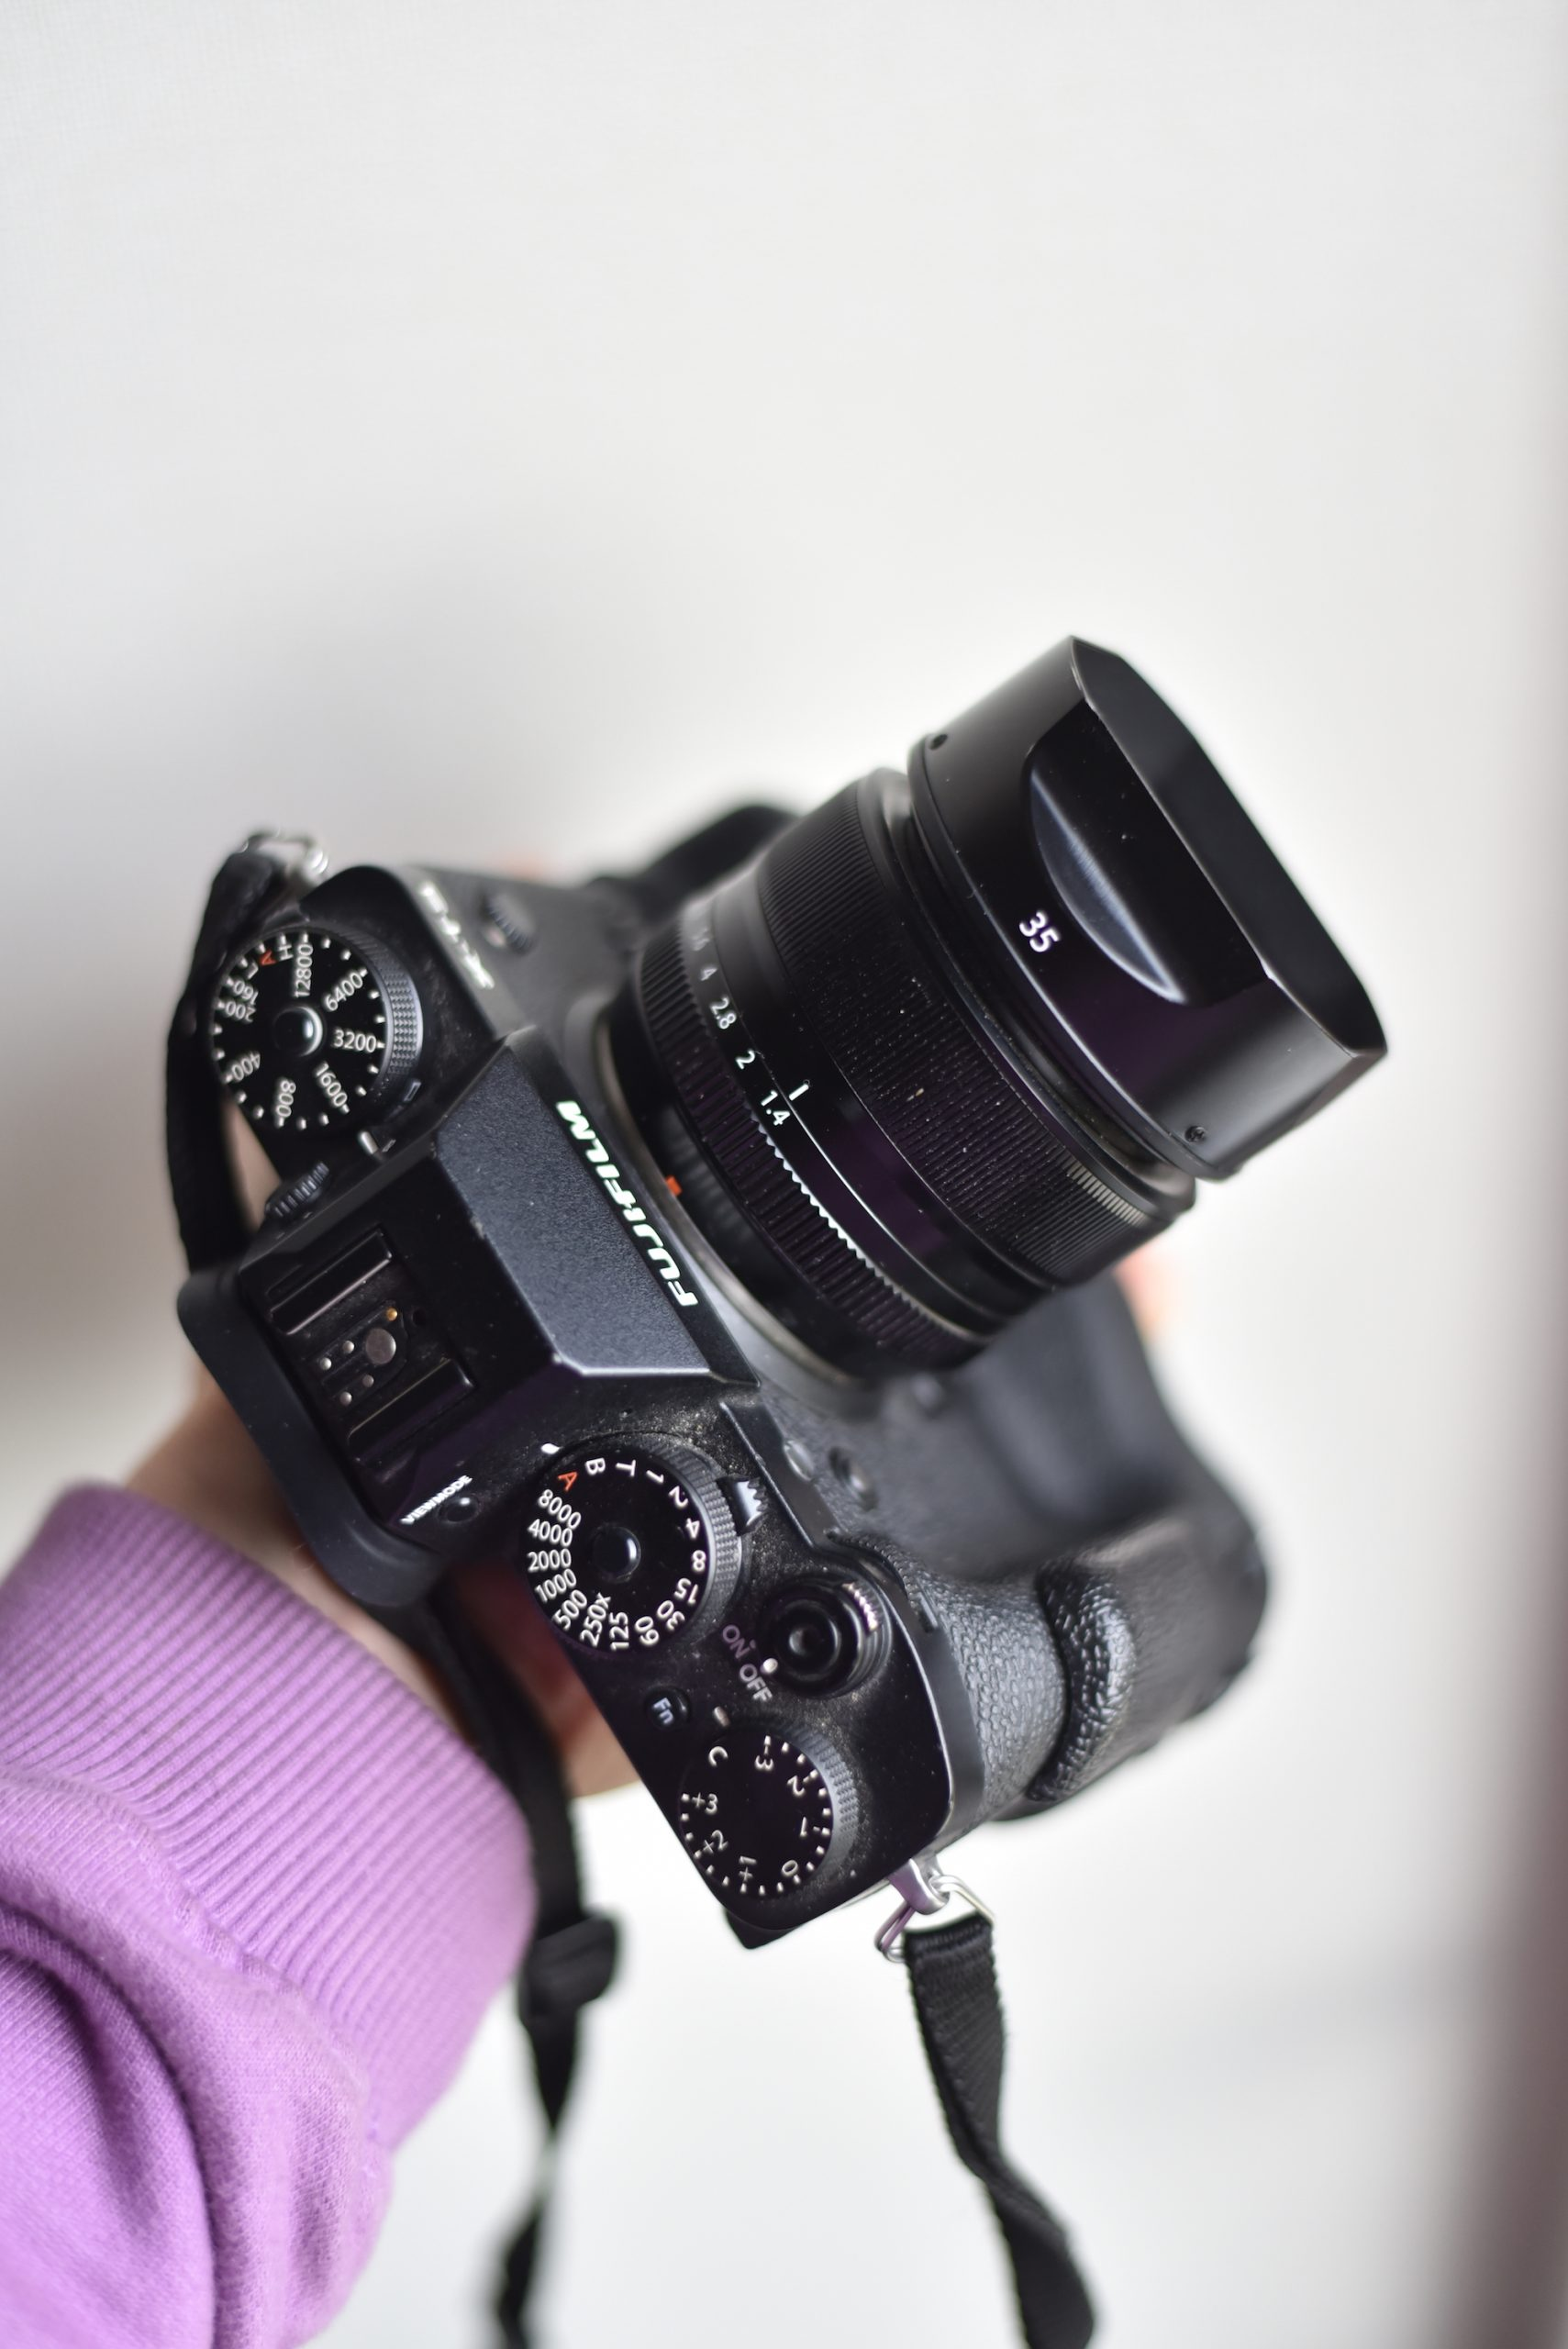 Fujifilm XT3 with Fujinon 35mm f:1.4 R Lens Image Samples and Review by Ben Holbrook from DriftwoodJournals.com3